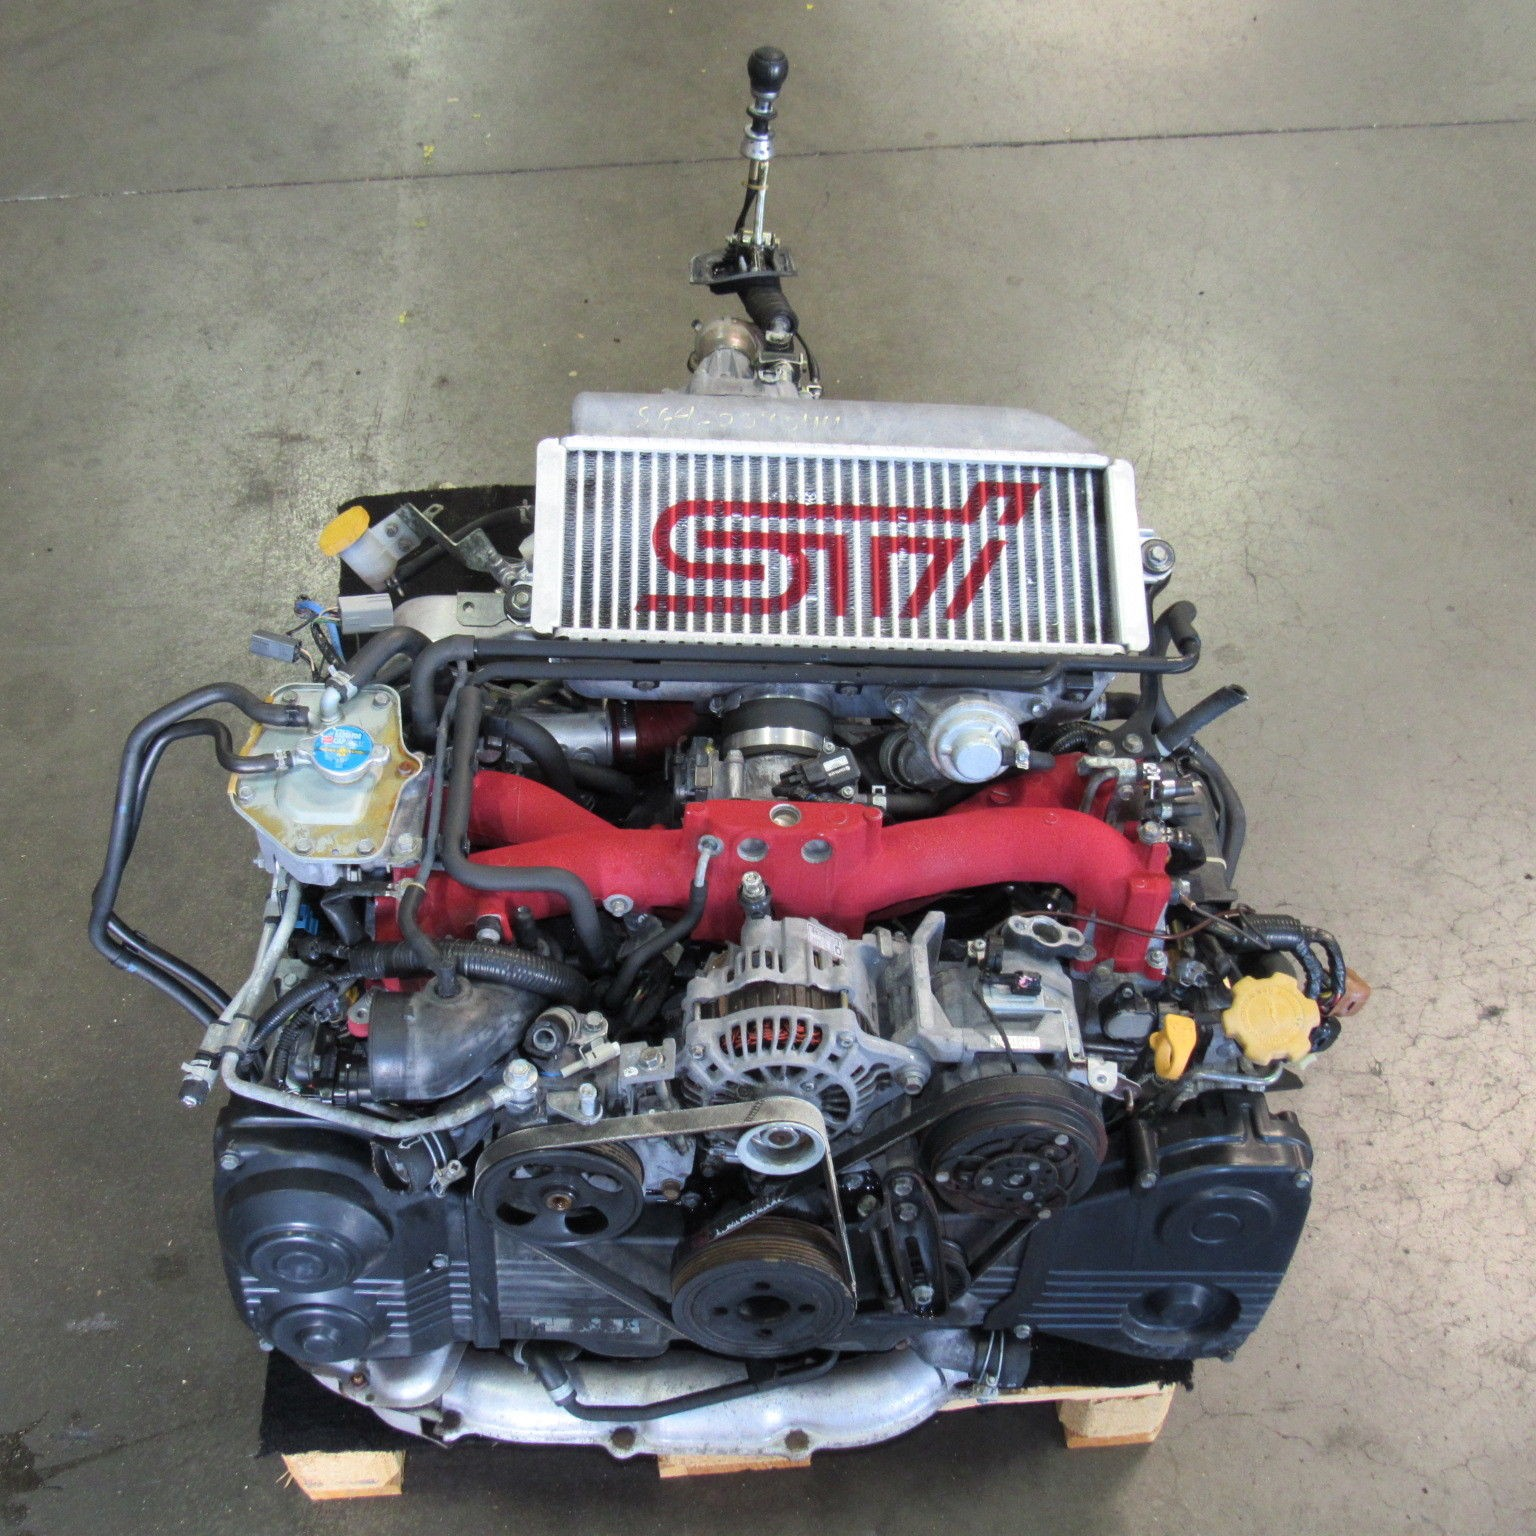 hight resolution of ej25 vs fa20 the great sti and wrx engine hoedown